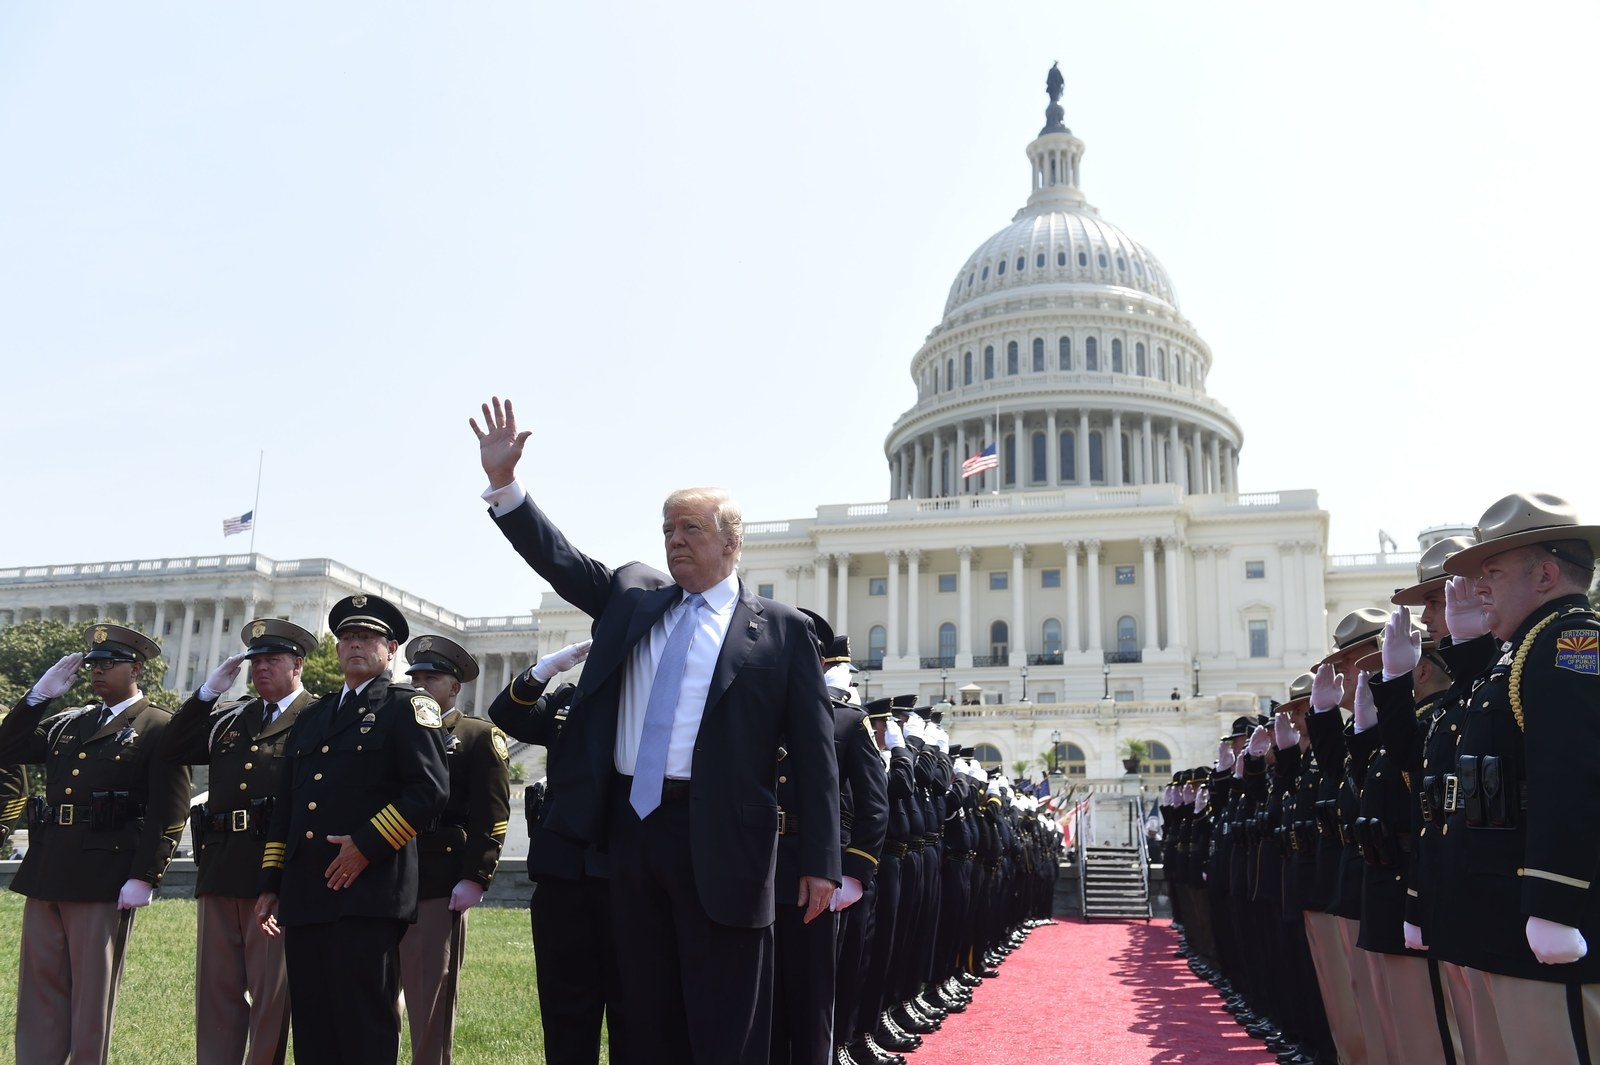 Trump waves as he arrives to address the 37th Annual National Peace Officers Memorial Service at the US Capitol on May 15.